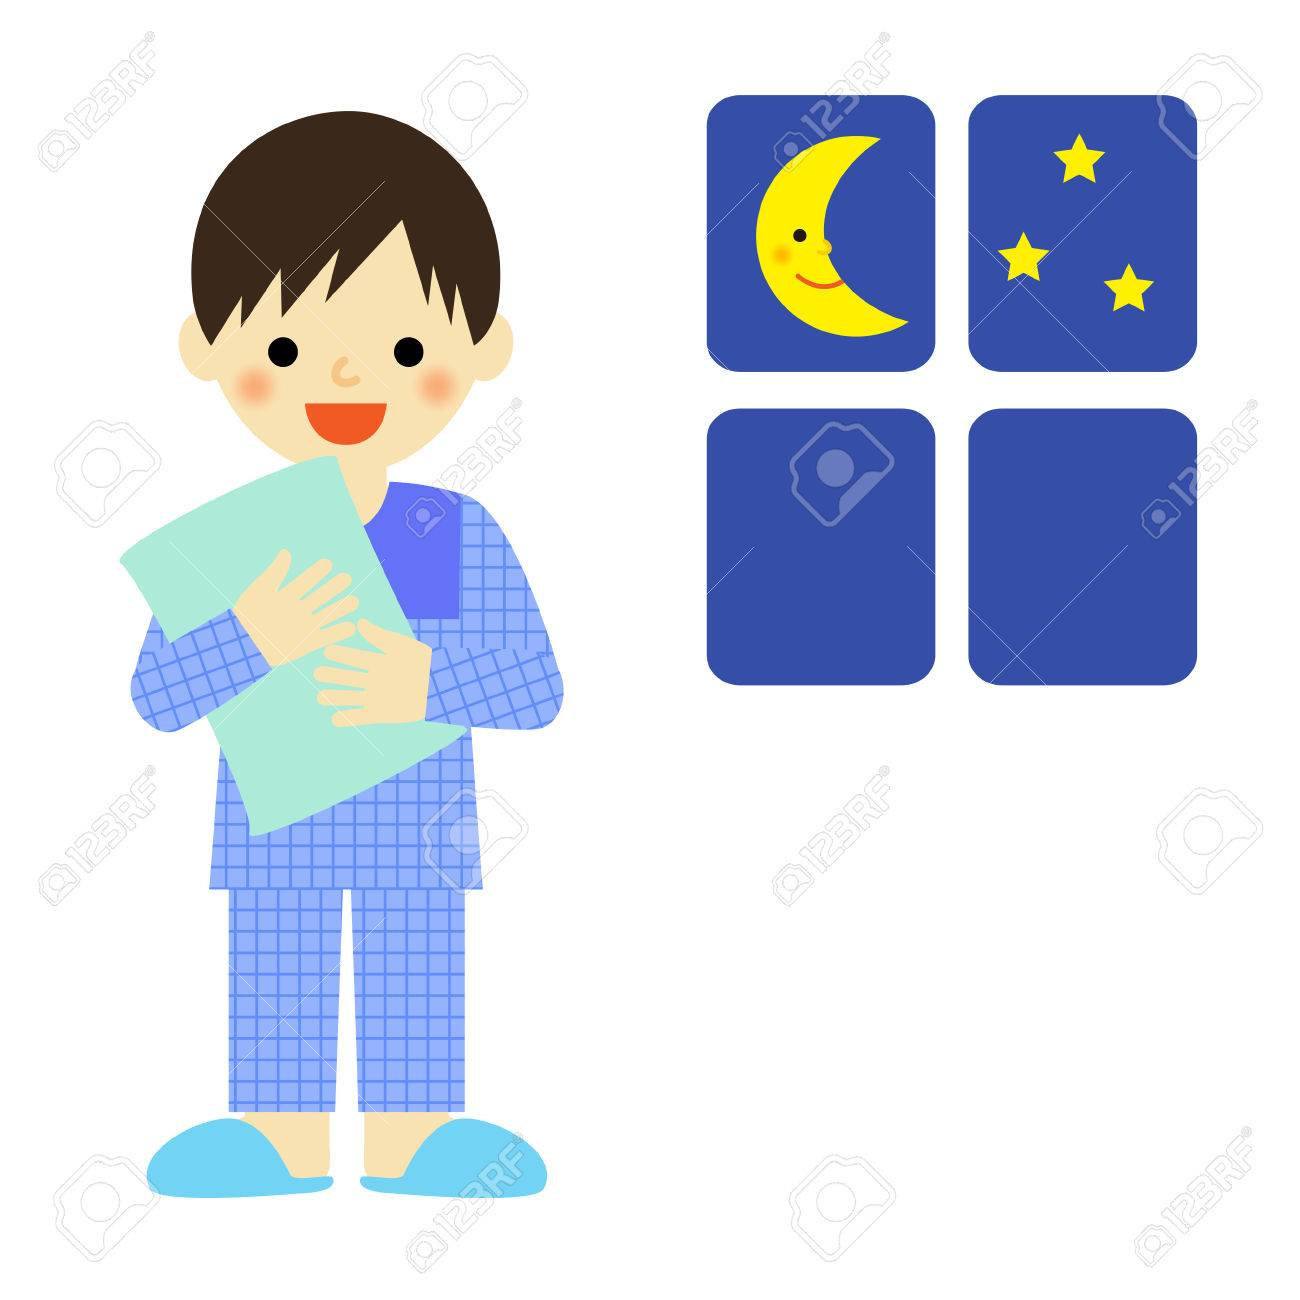 Boy in pajamas holding a pillow.